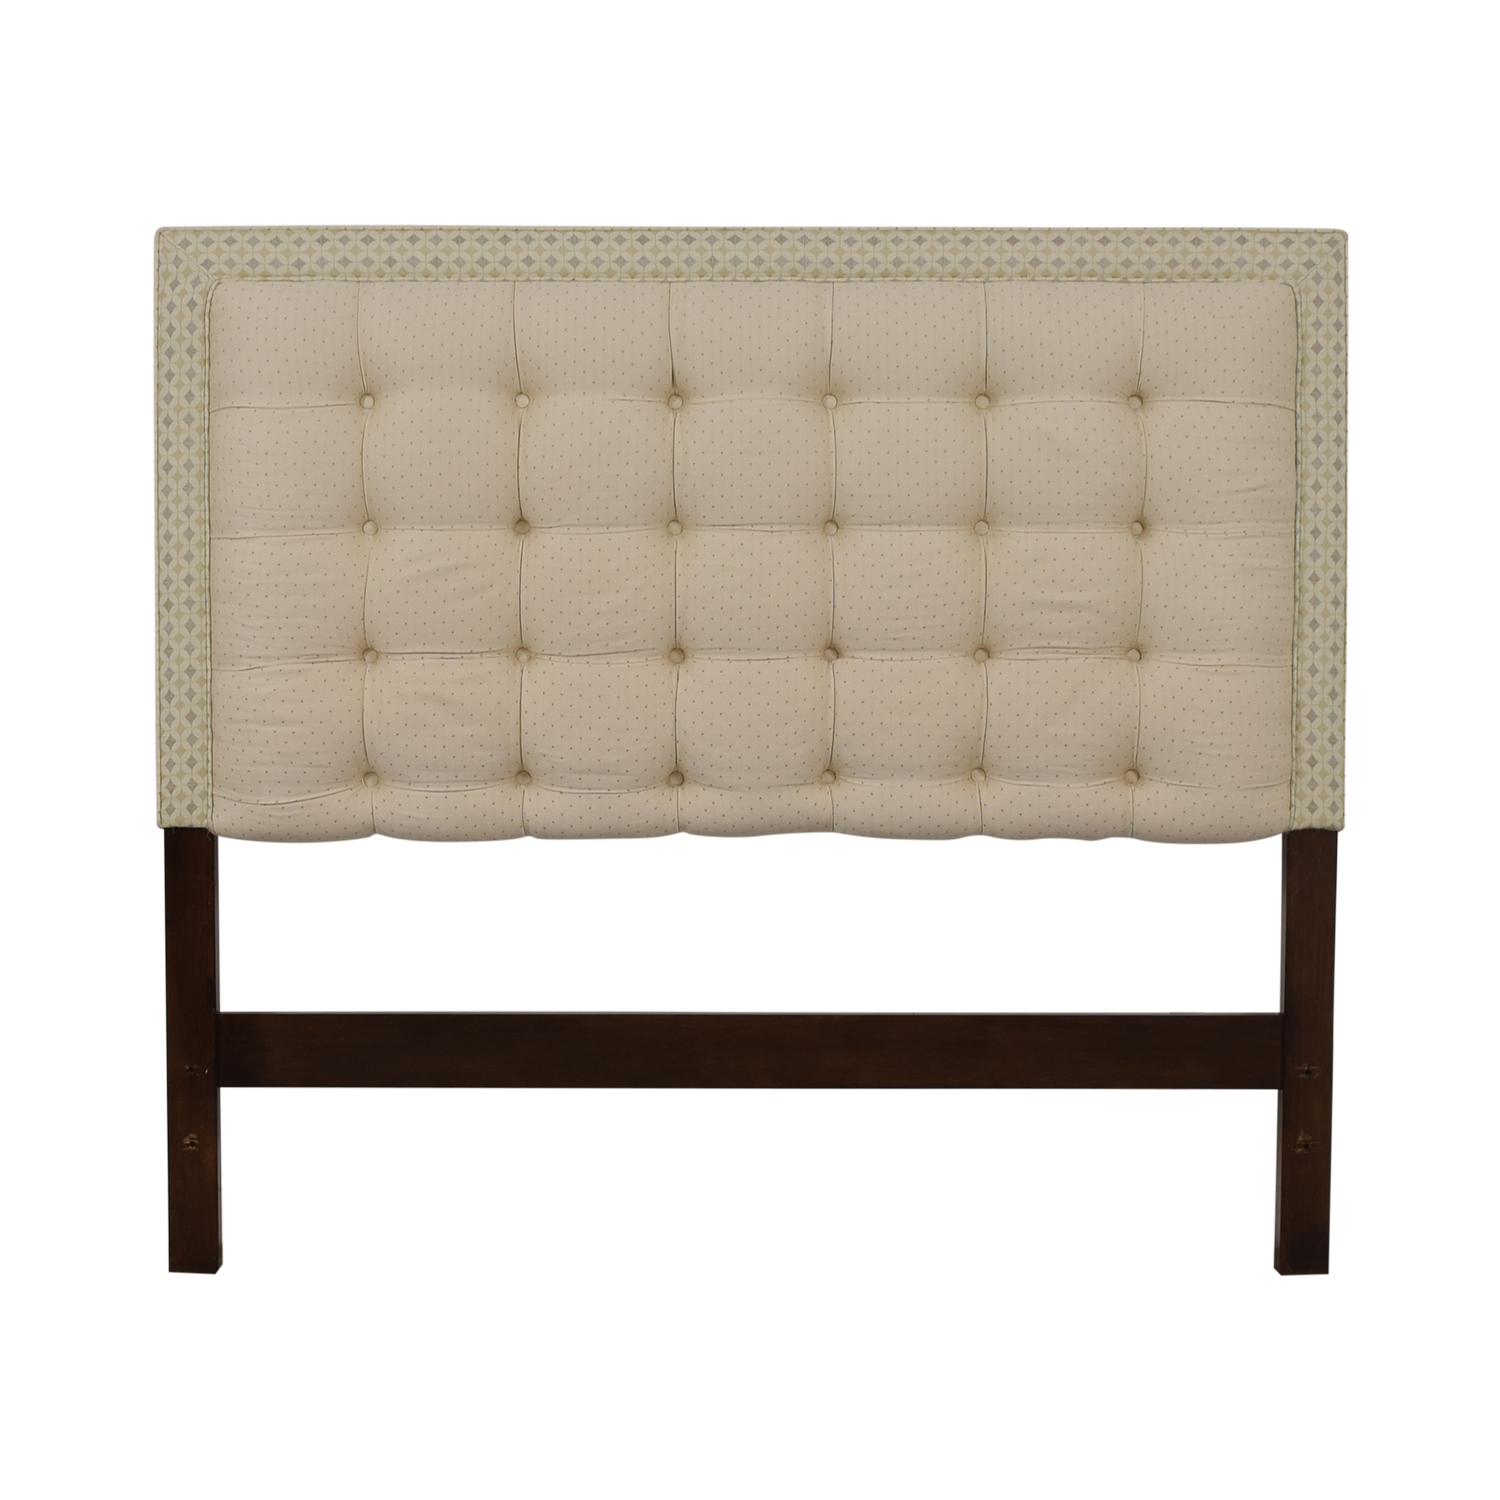 Custom Creme Tufted Queen Headboard nj